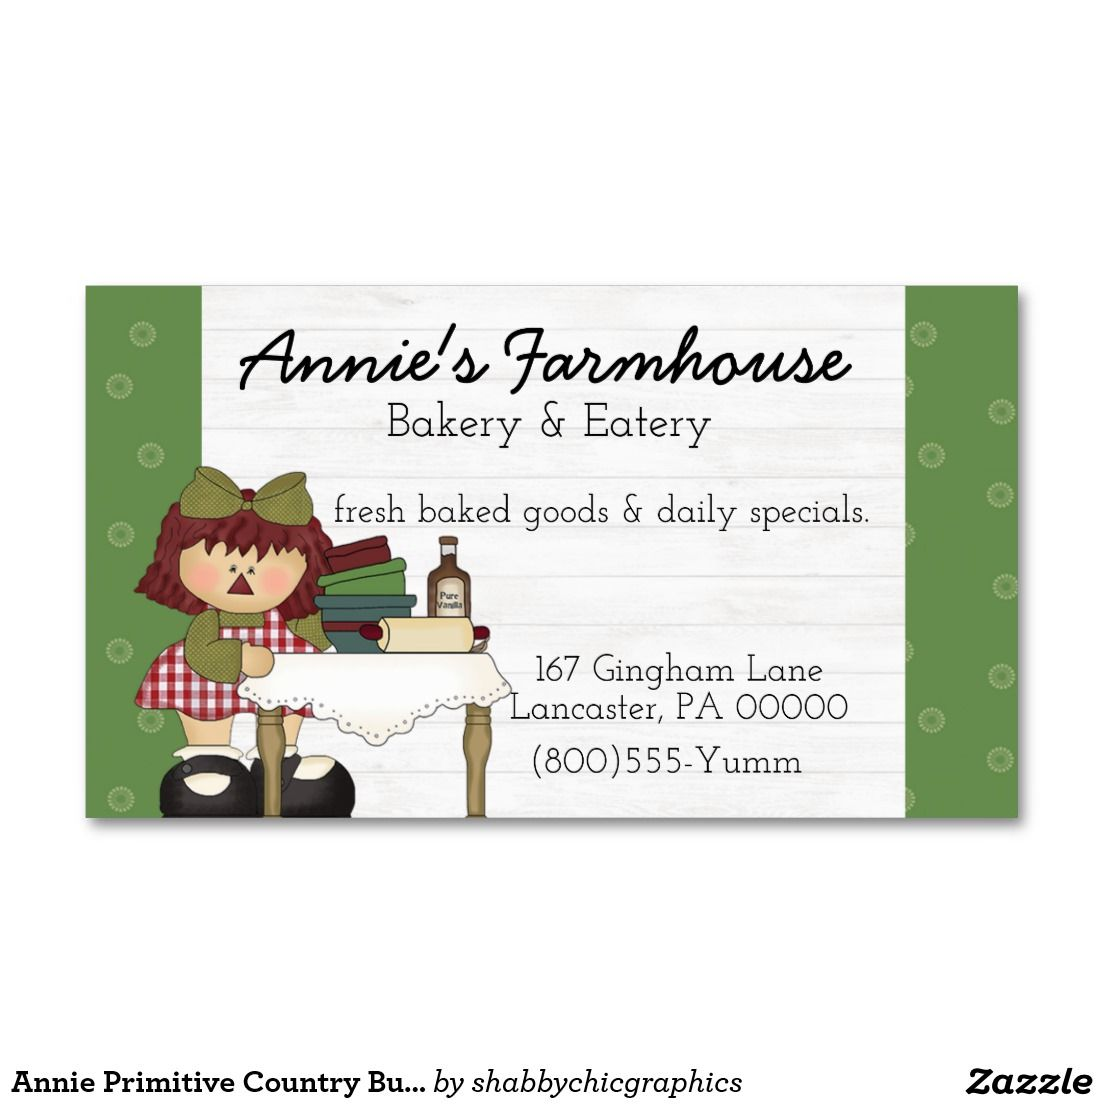 Annie Primitive Country Business Card | My business cards ...